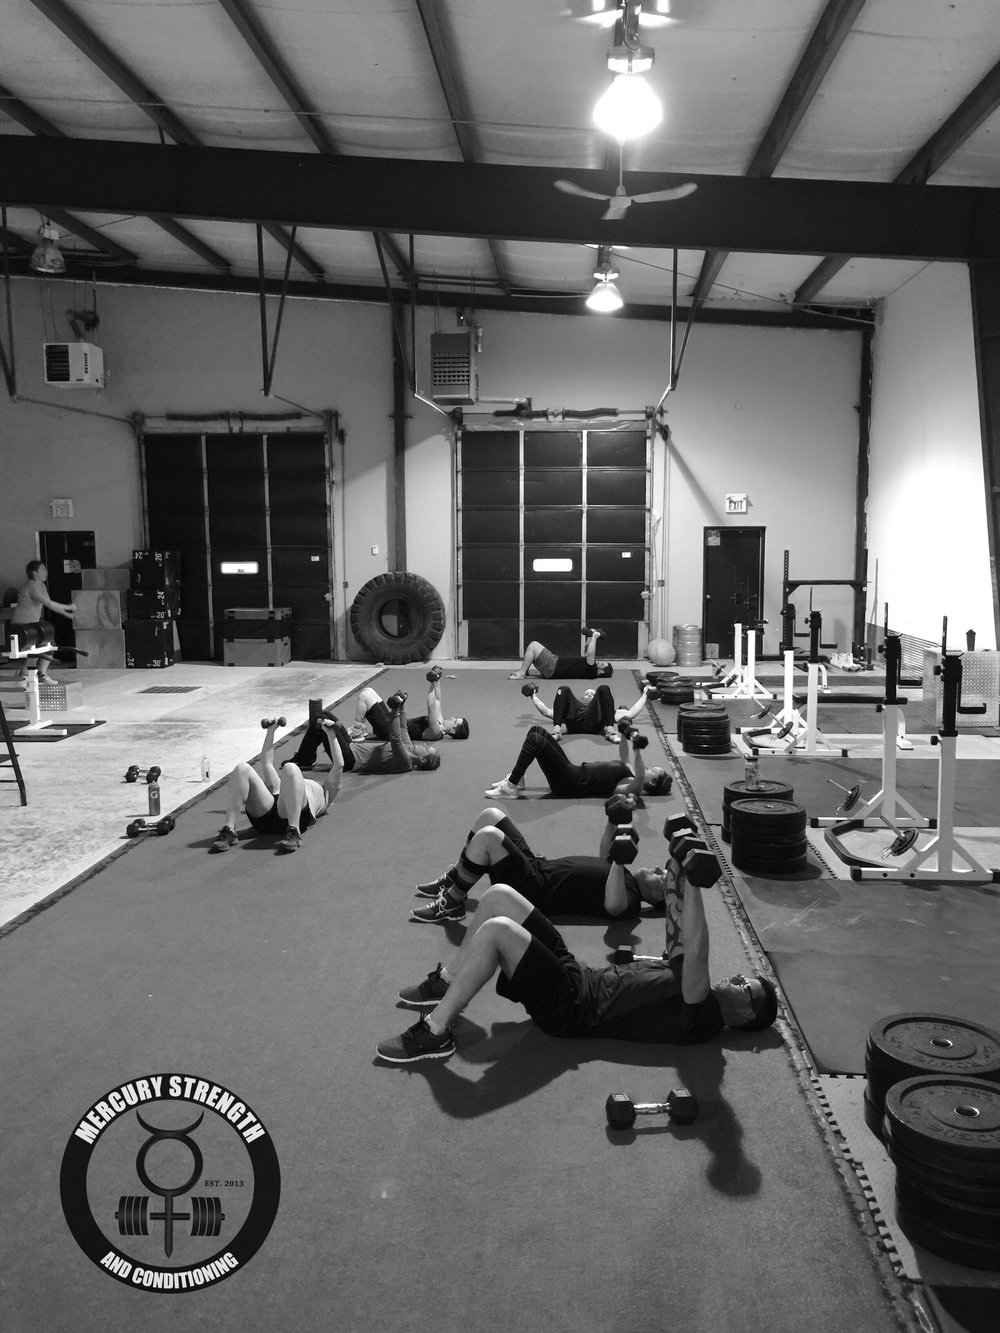 A bust 16:45 session with some DB floor press and DB flys